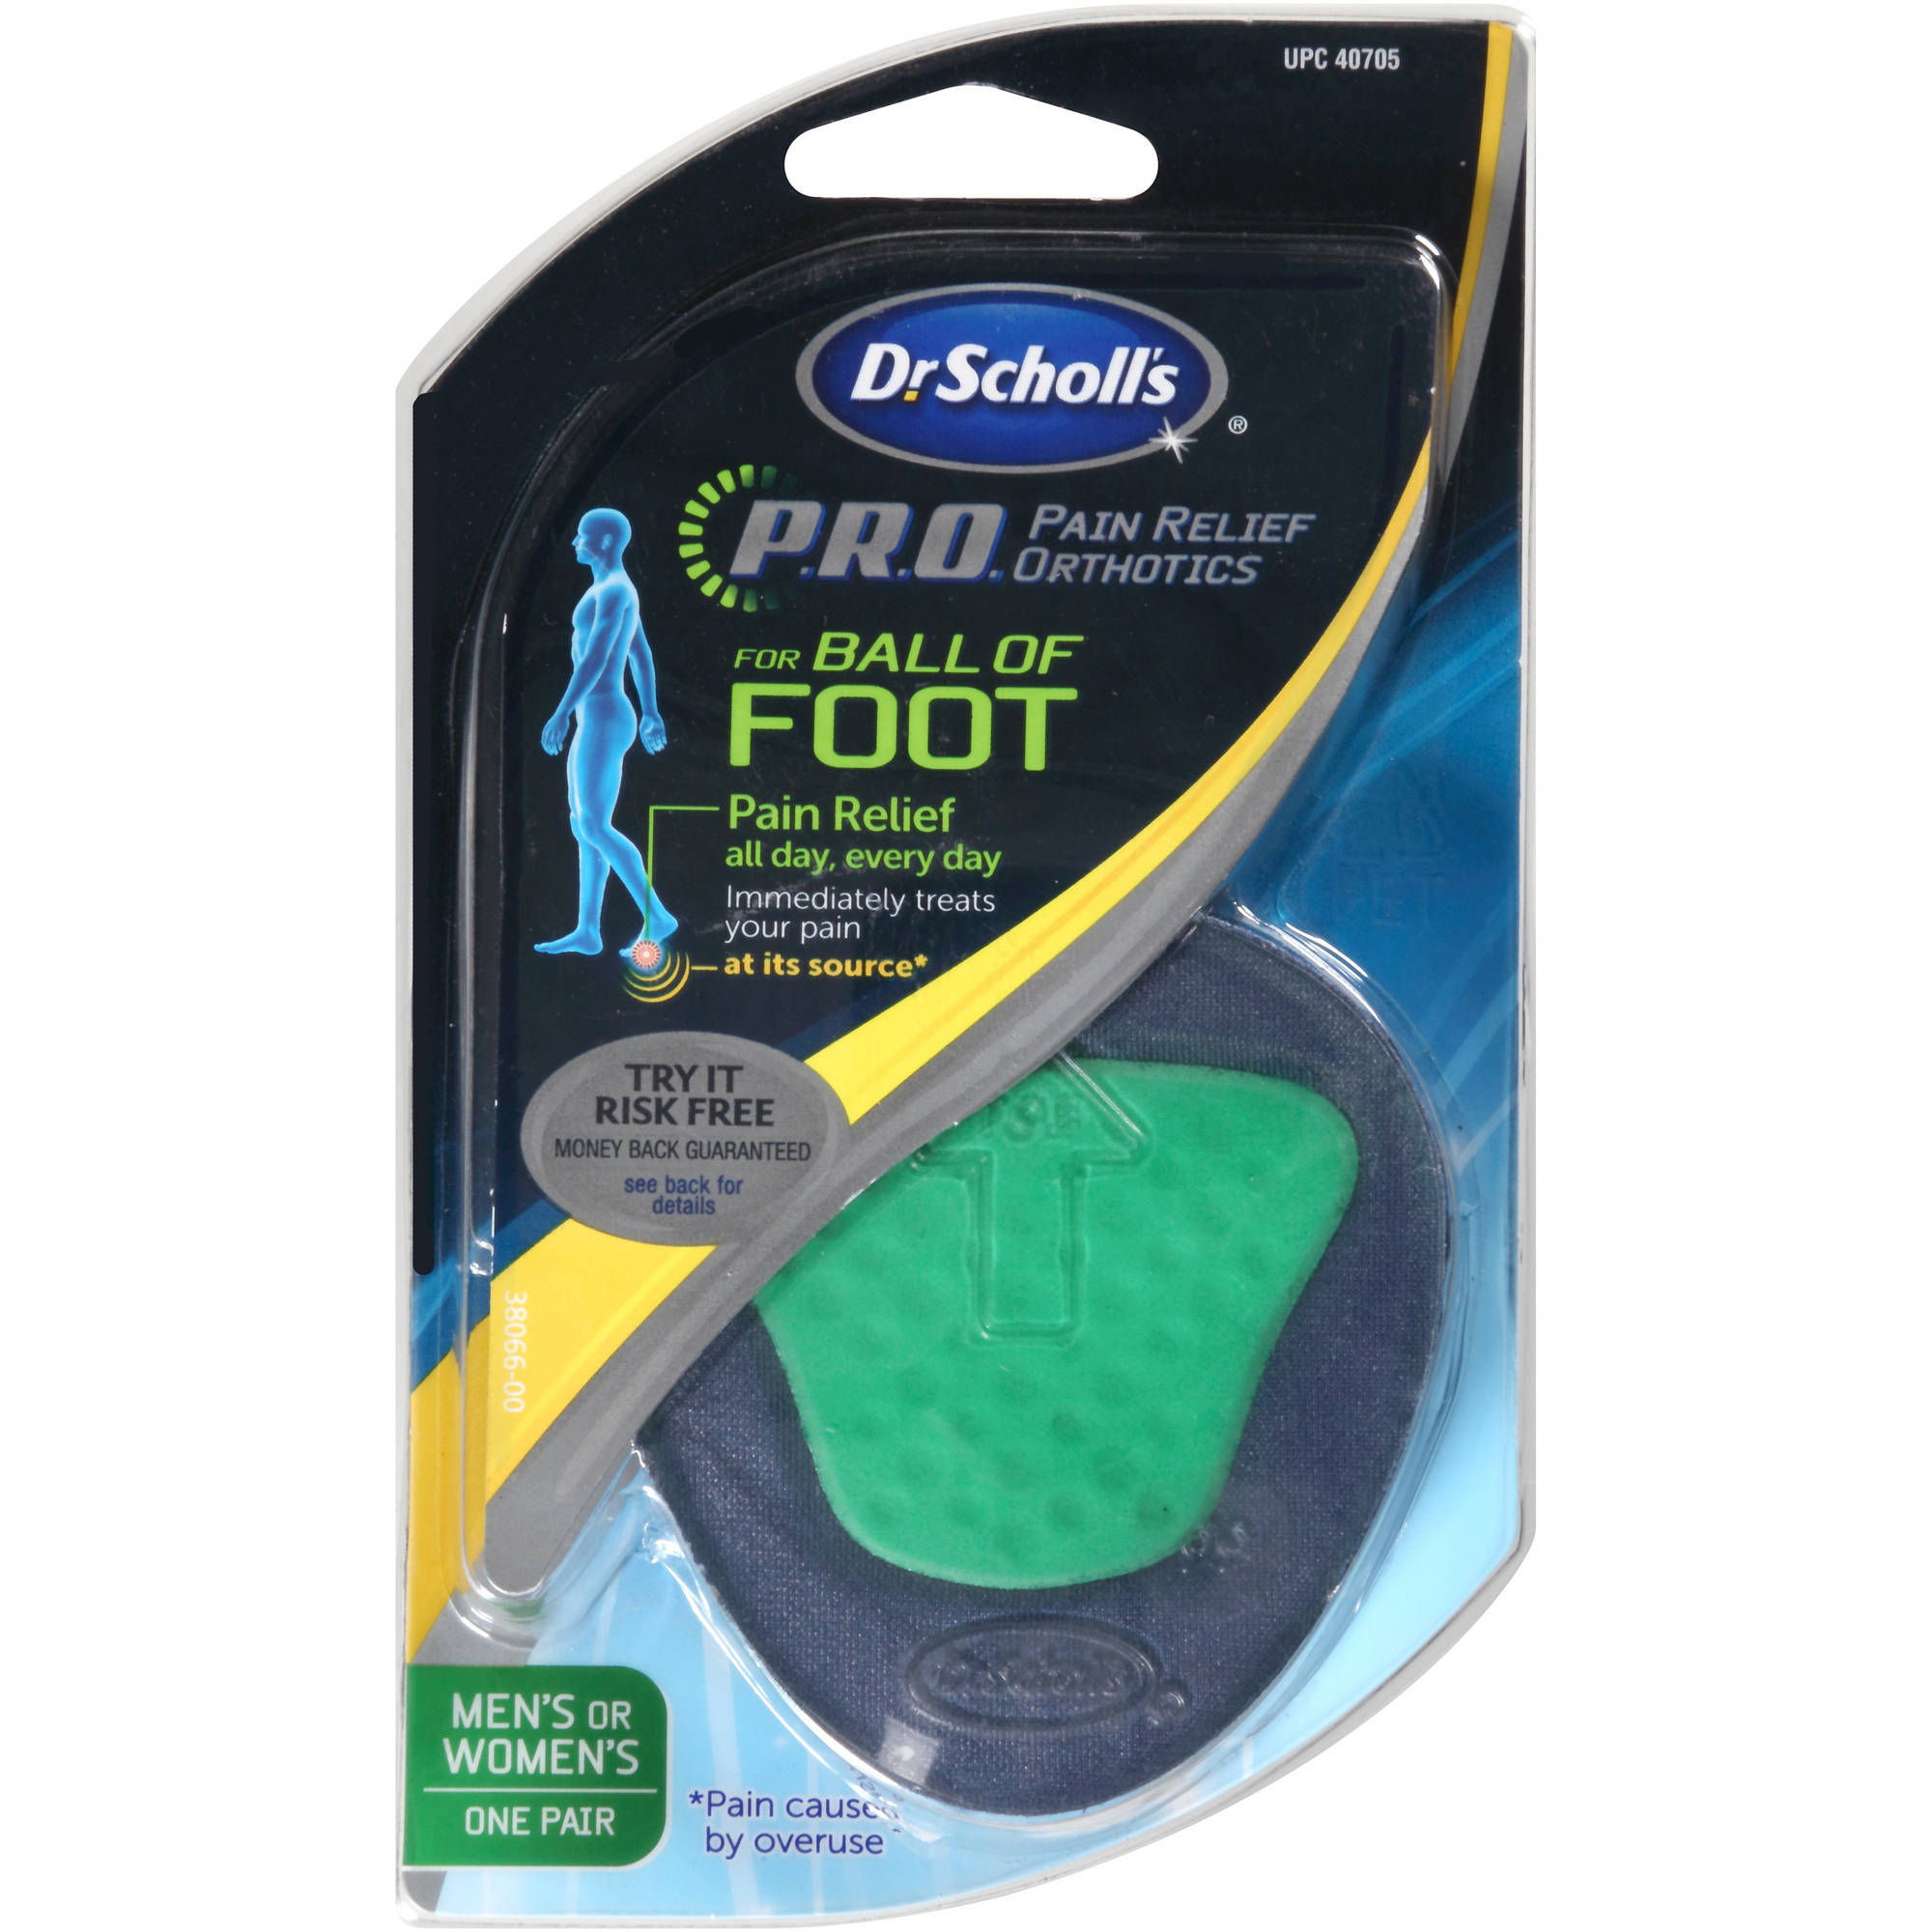 Dr. Scholl's P.R.O. Pain Relief Orthotics for Ball of Foot, 1 pair